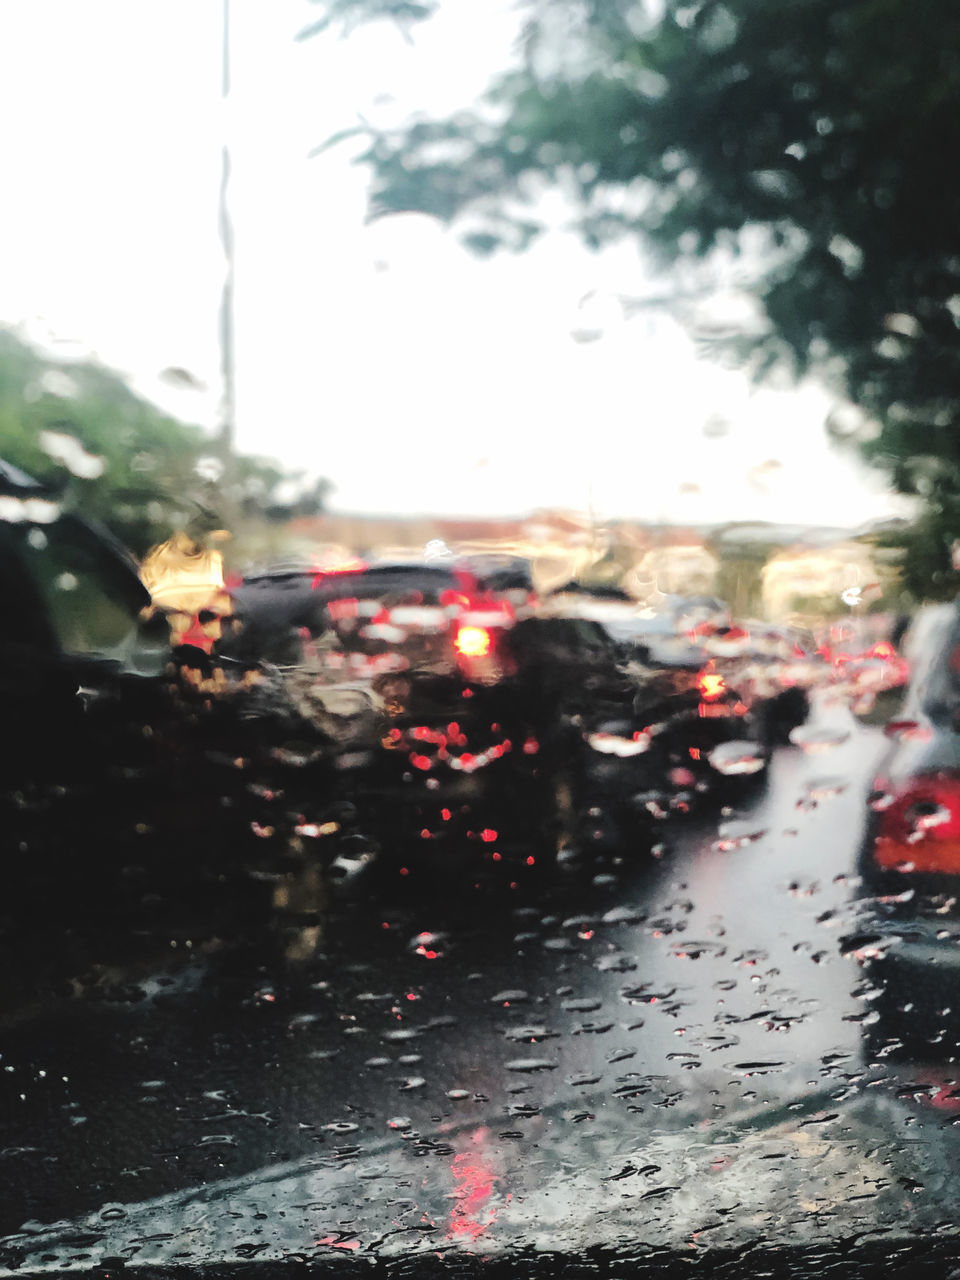 CARS ON WET ROAD DURING RAINY SEASON